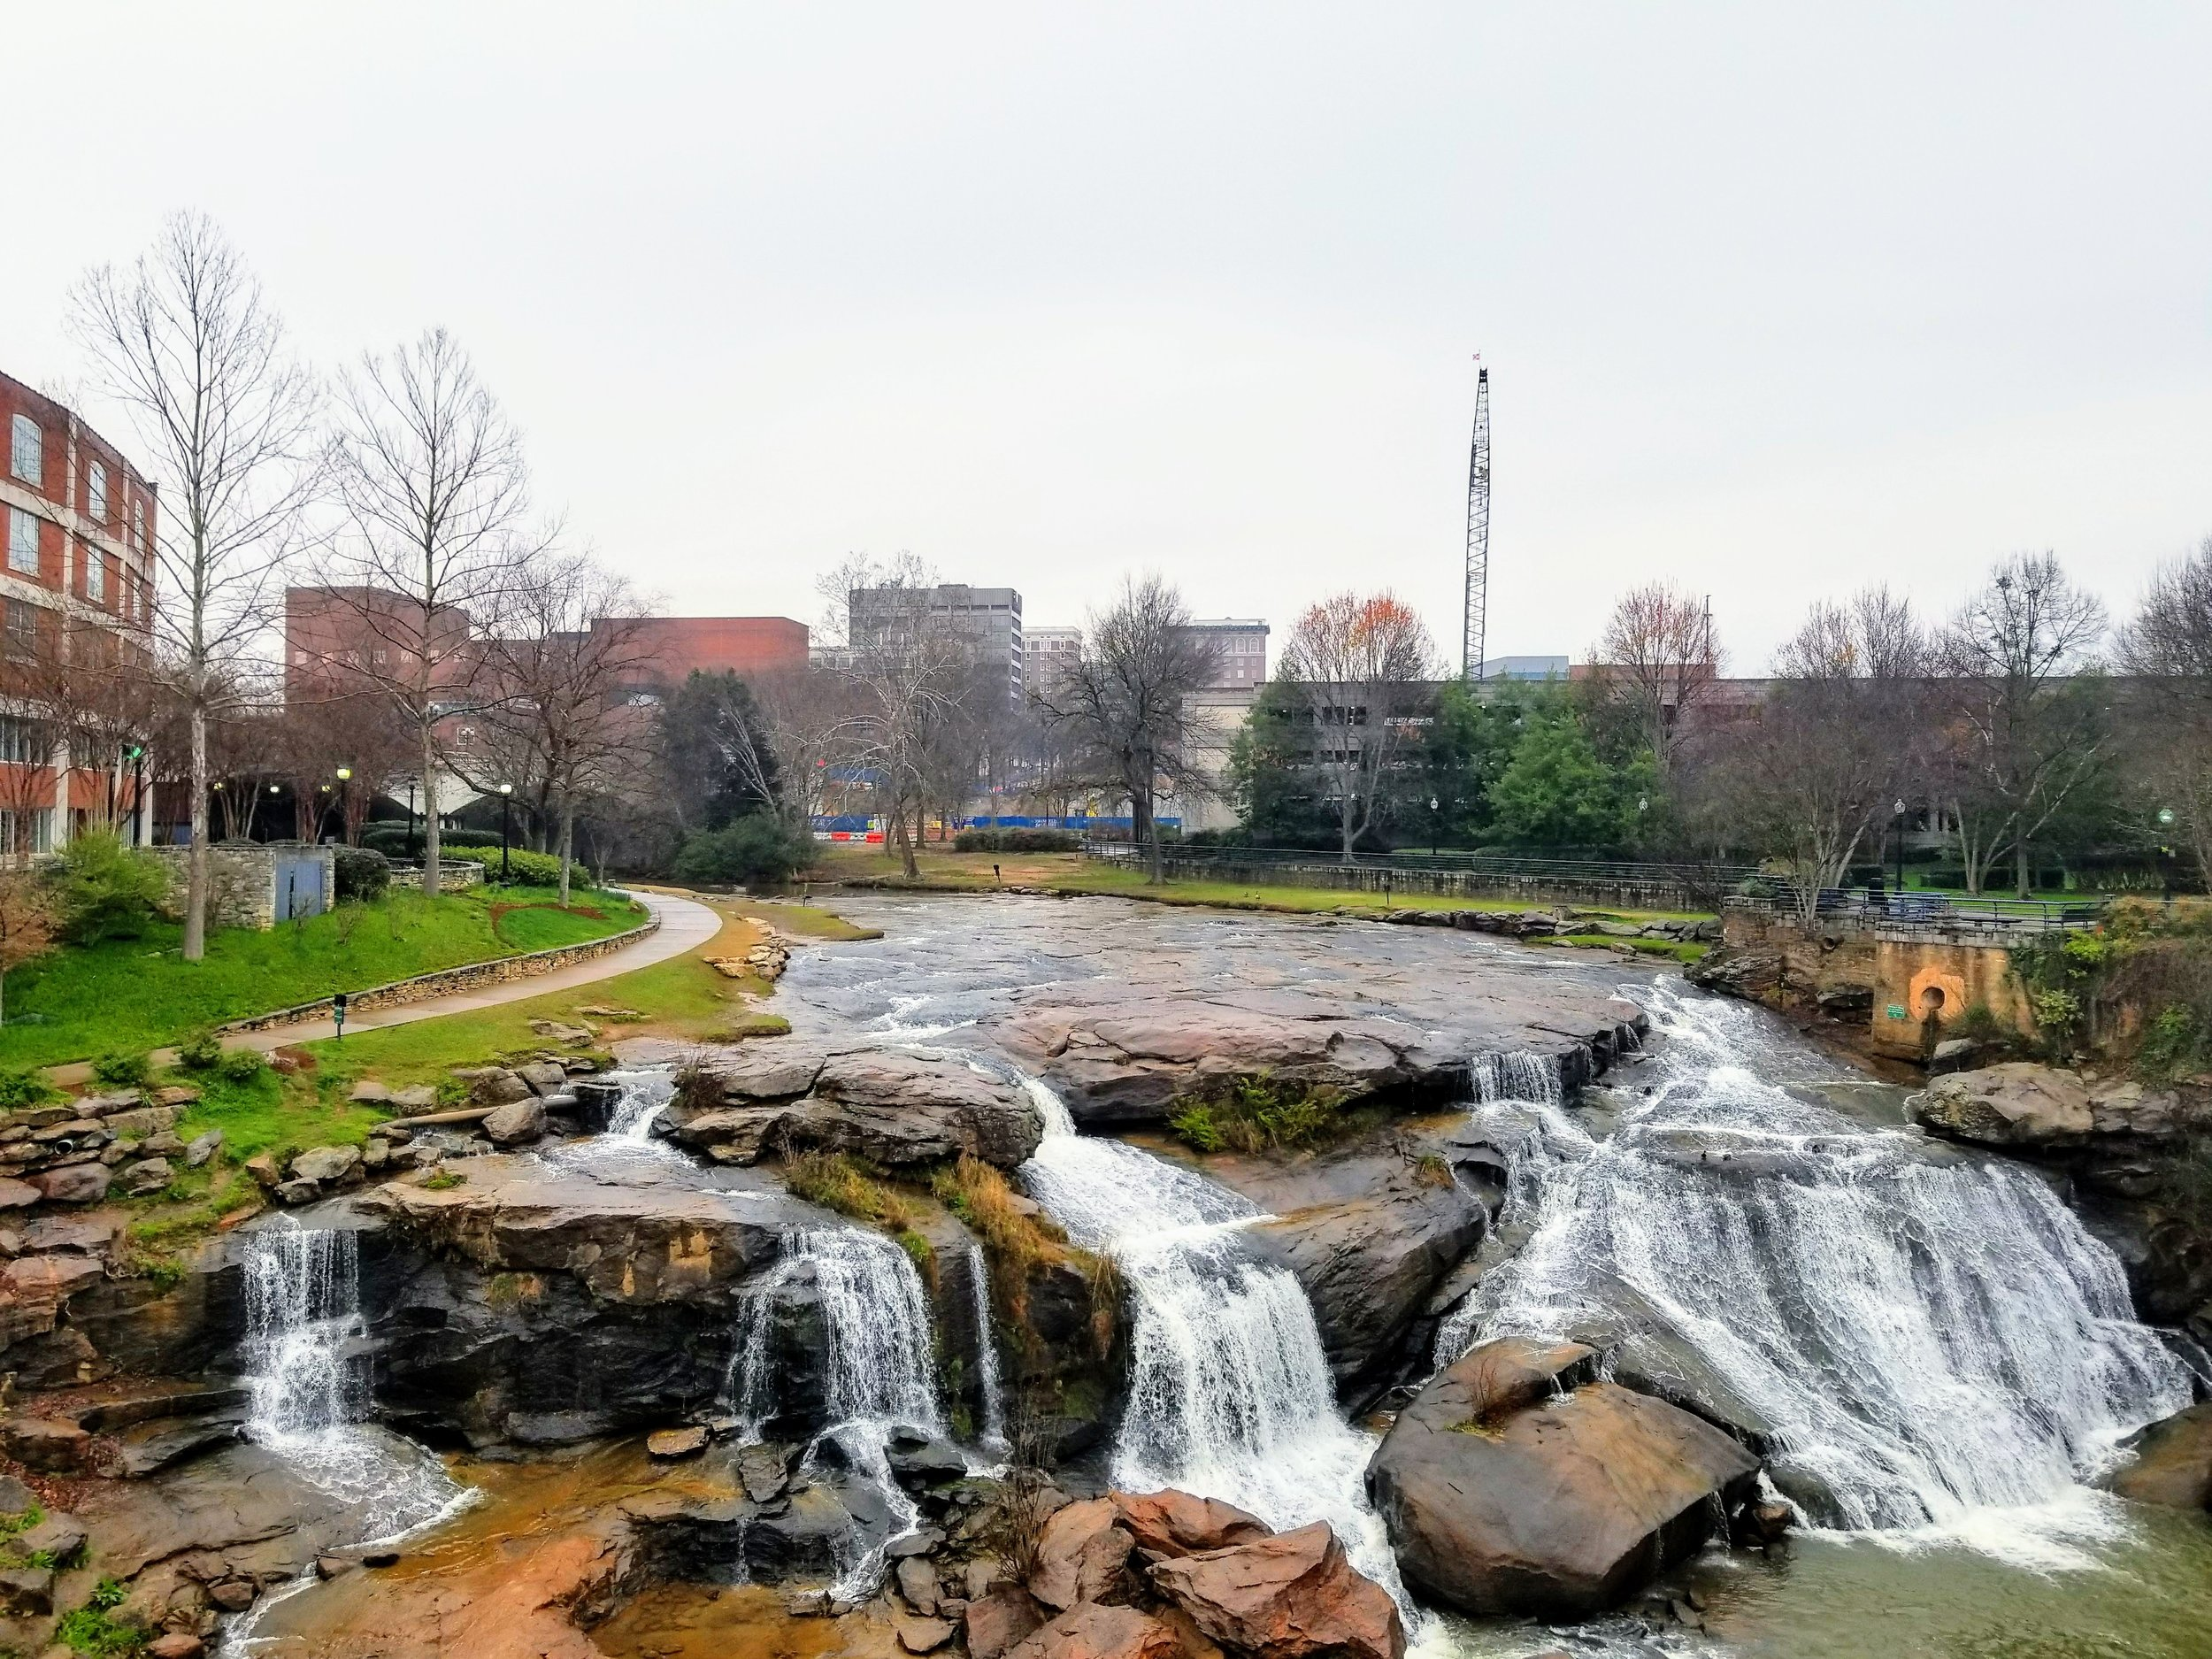 Falls-of-the-reedy-downtown-greenville.jpg